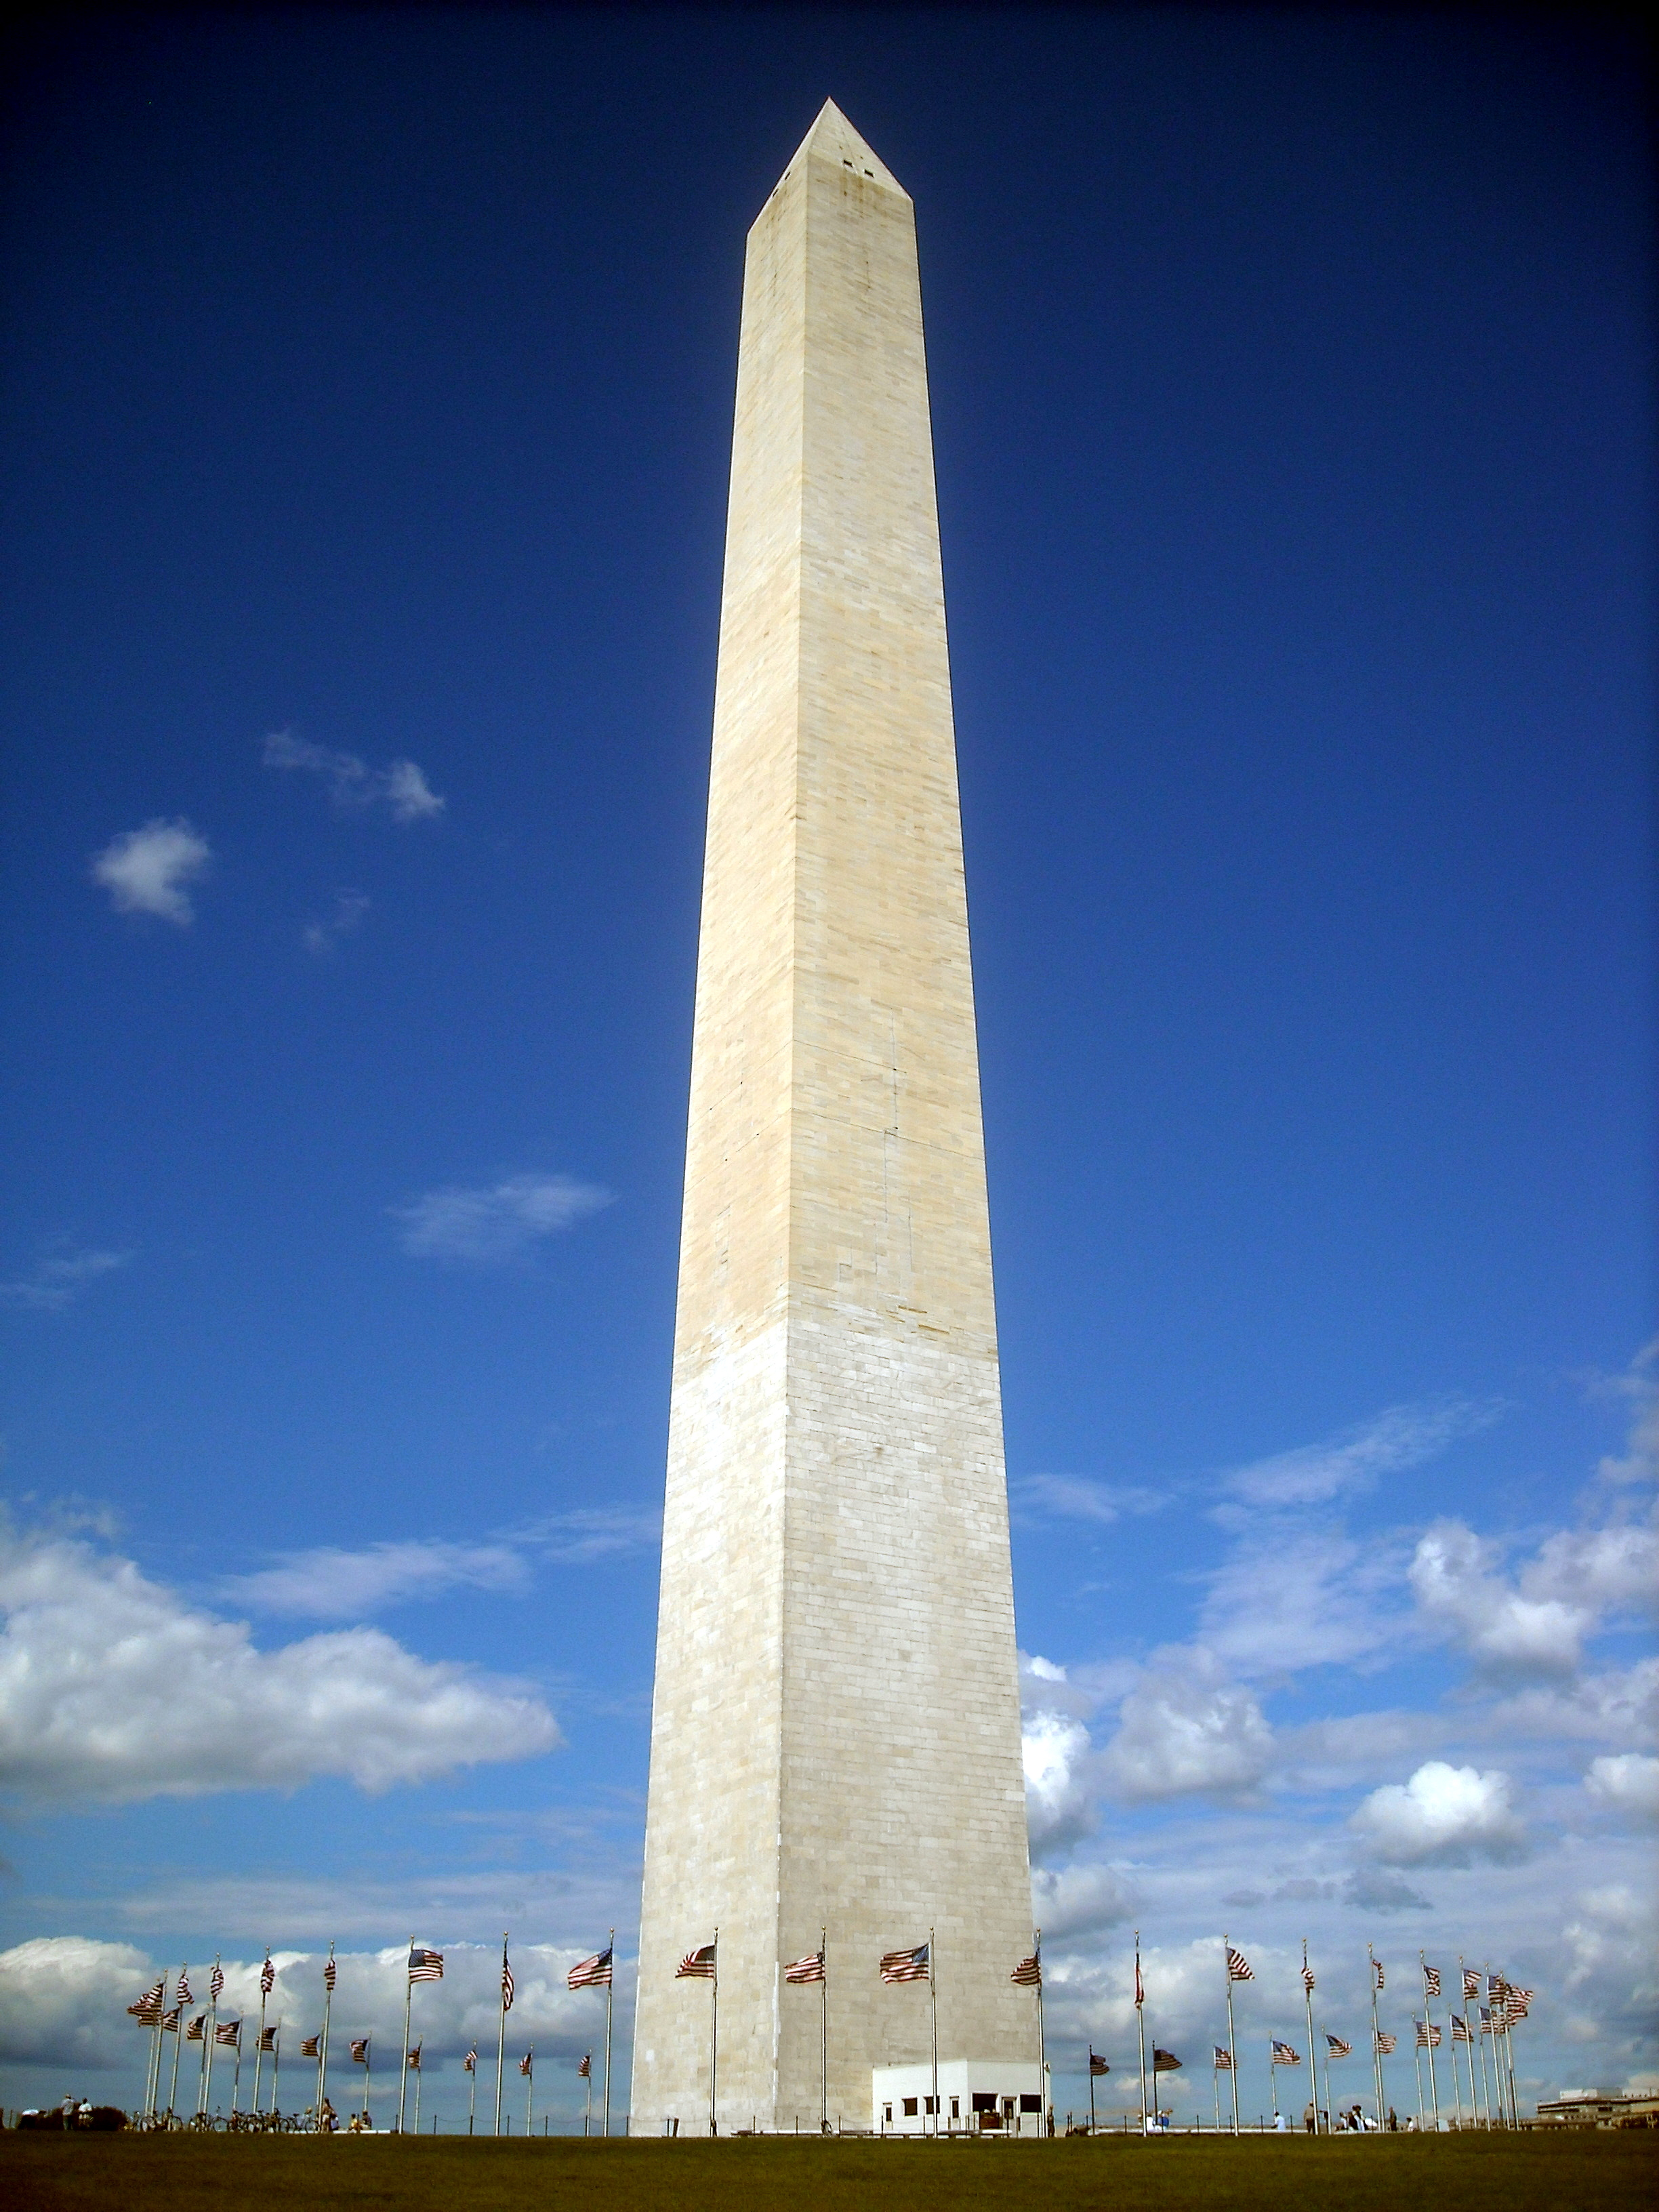 Facts For Kids About The Washington Monument